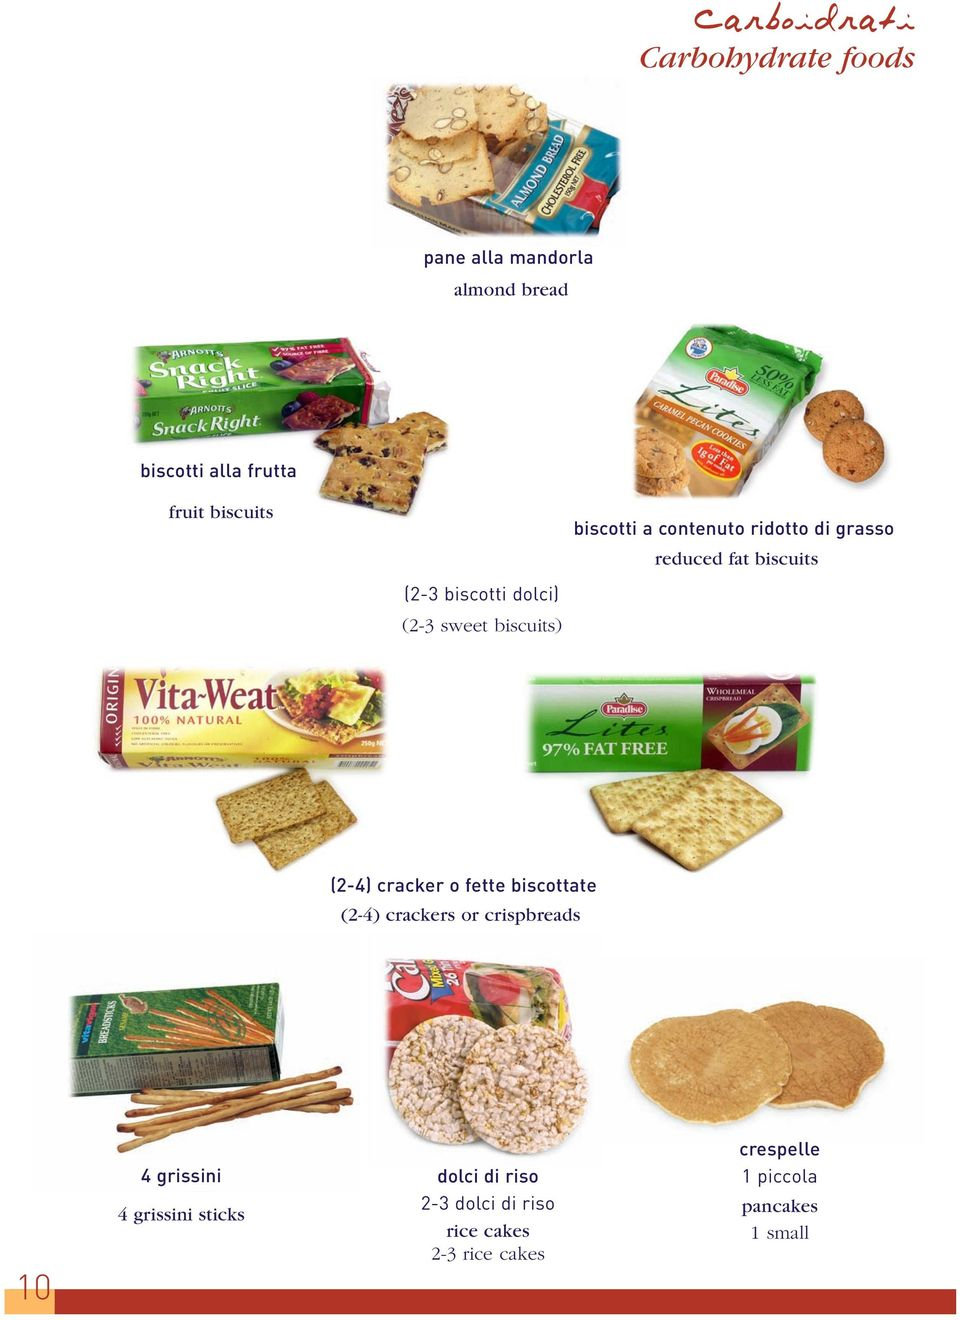 sweet biscuits) (2-4) cracker o fette biscottate (2-4) crackers or crispbreads 10 4 grissini 4